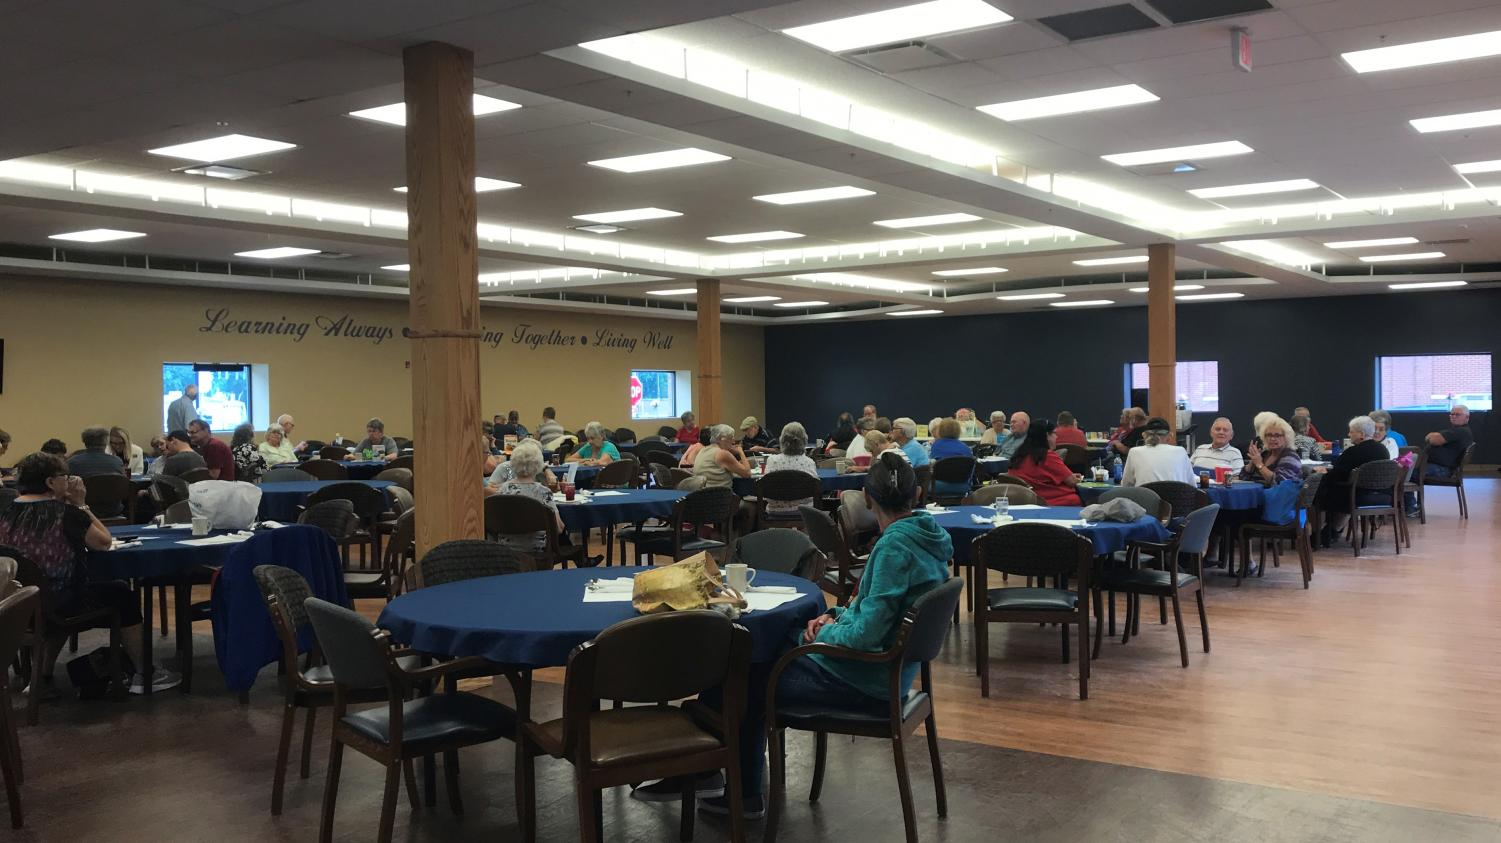 Seniors play Bingo at the Center for Seniors during the Friday morning game slot on Aug. 17.